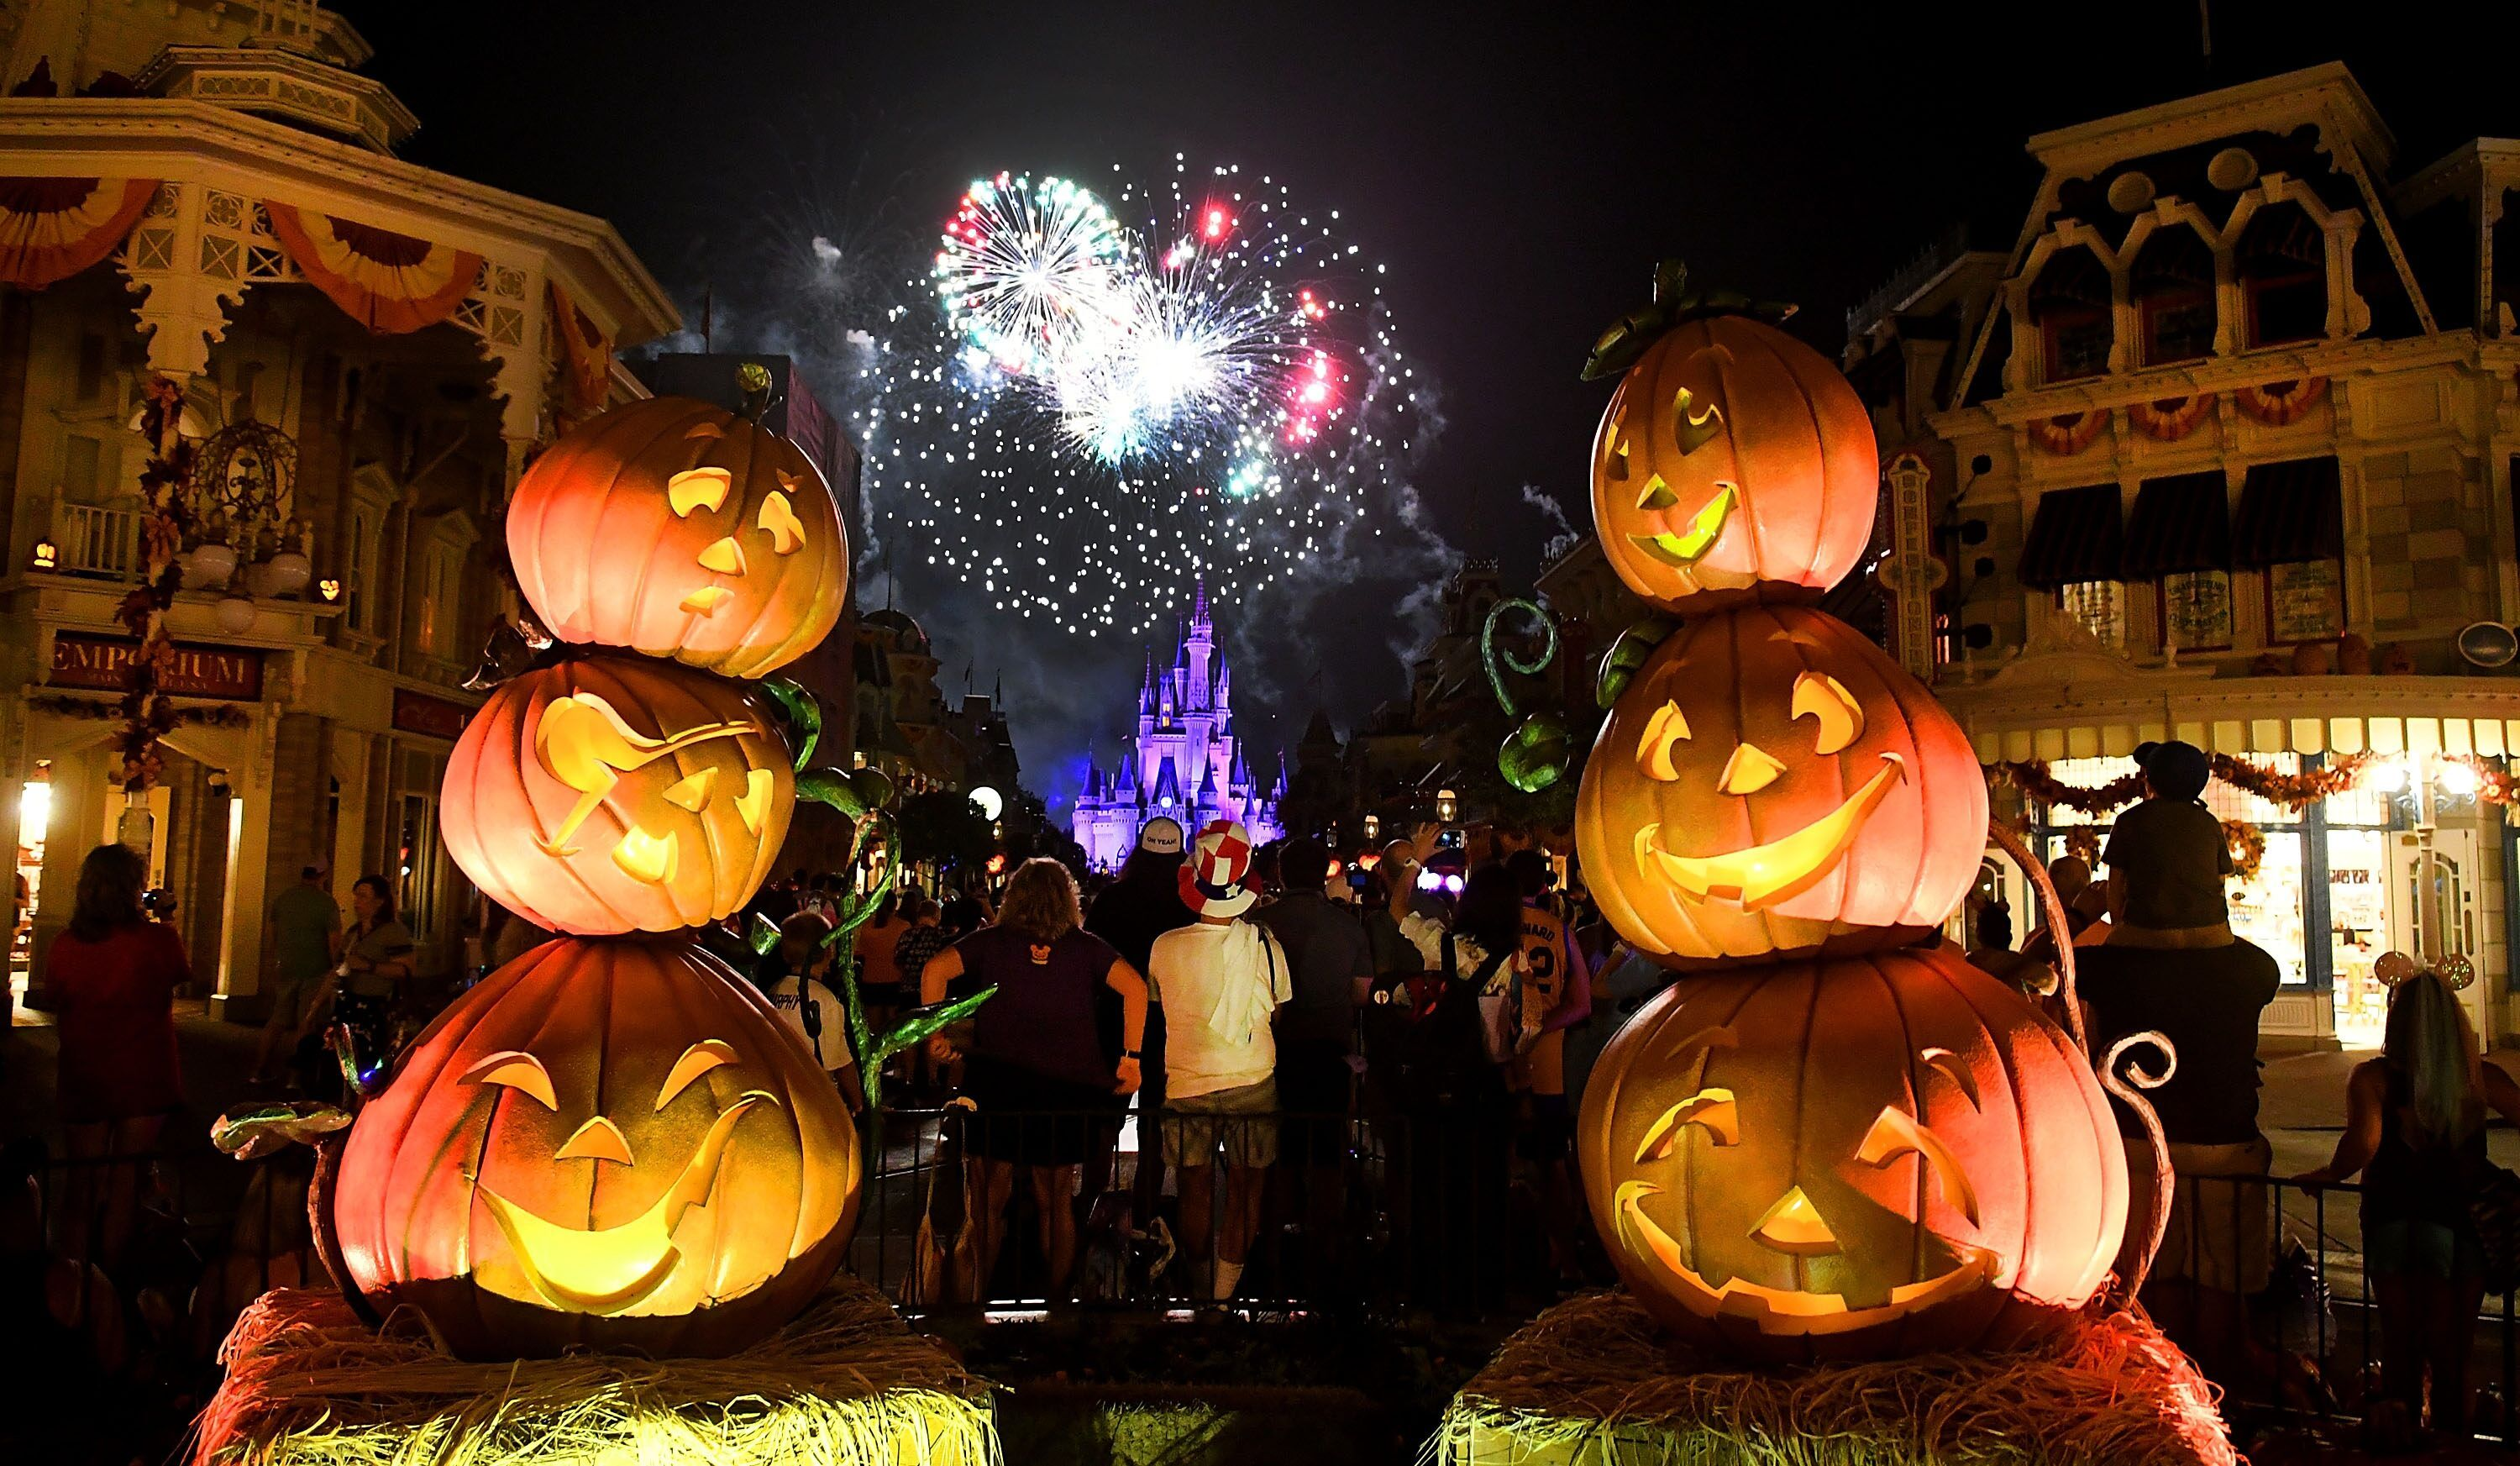 Halloween Activities For Kids 2020 Near Me FOX NEWS: Disney World cancels Halloween party adjusts Epcot